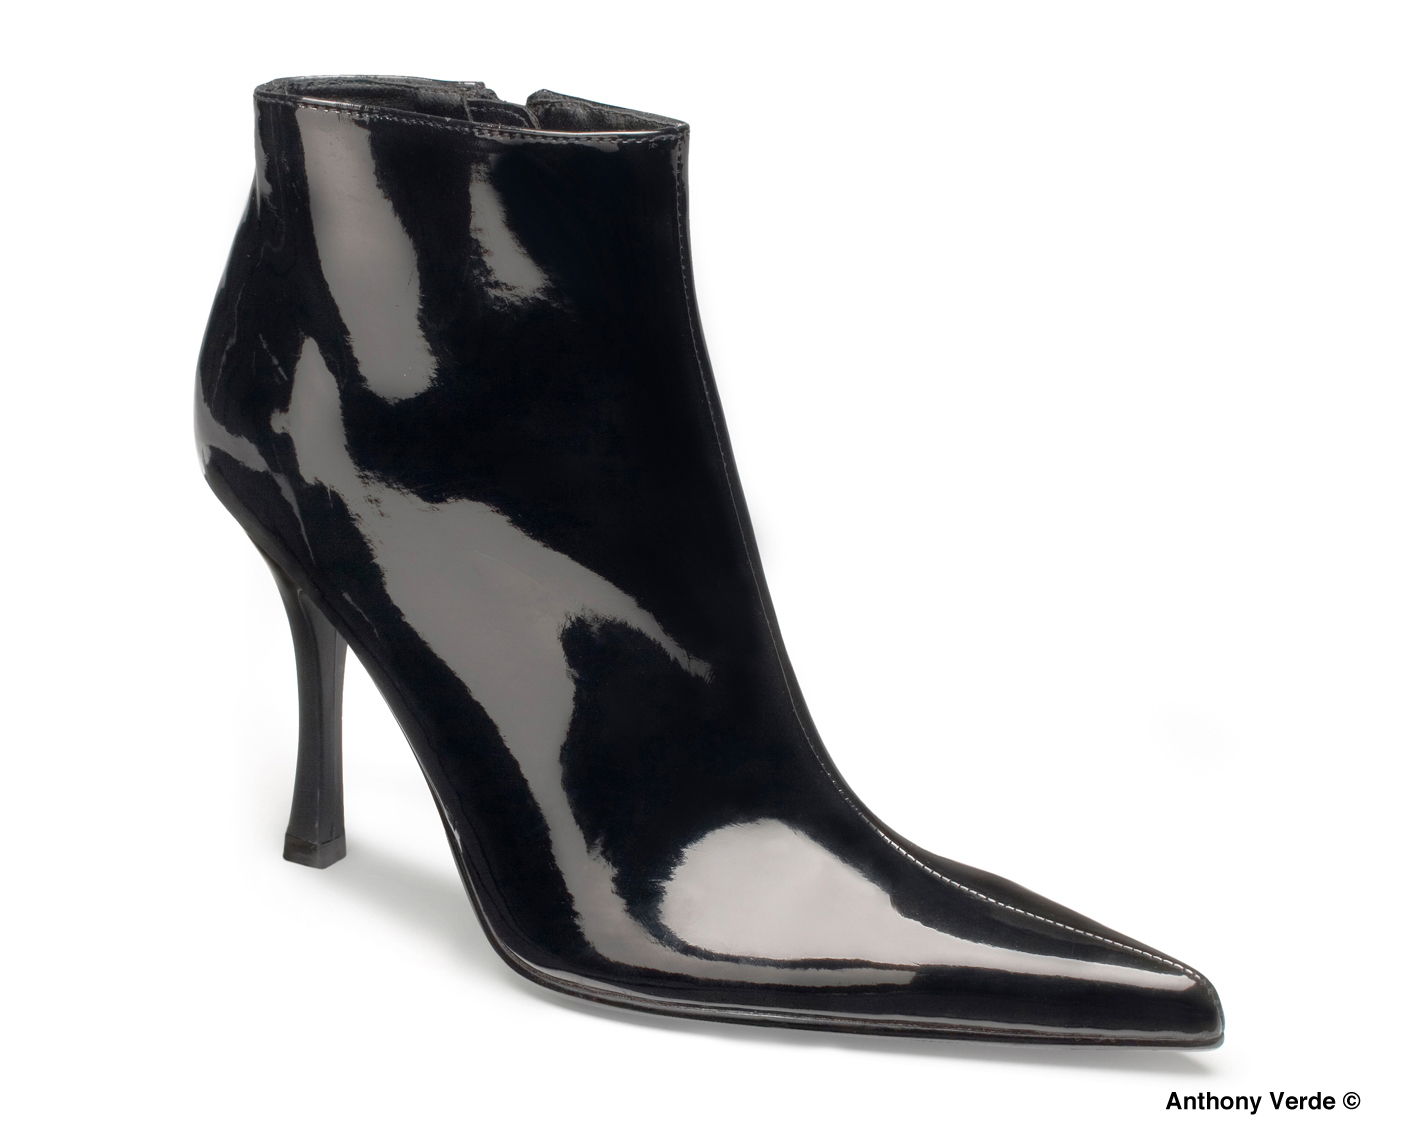 black-patent-leather-boot-product-photography